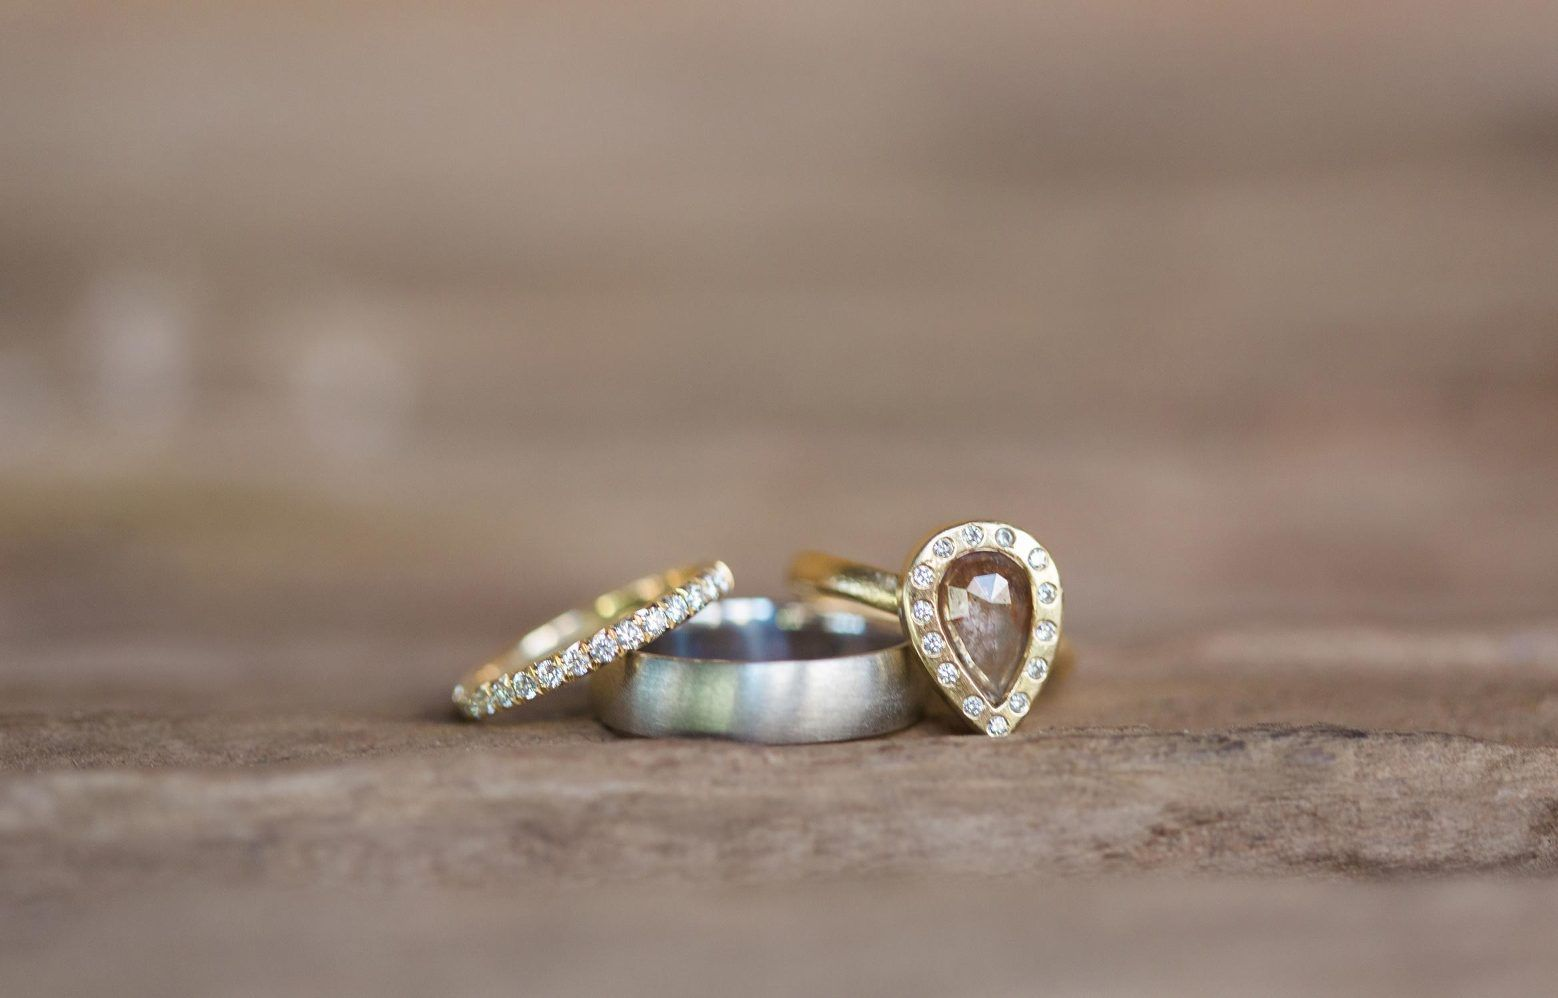 Unique gold engagement and wedding rings.  Wedding Photography by www.leahvis.com